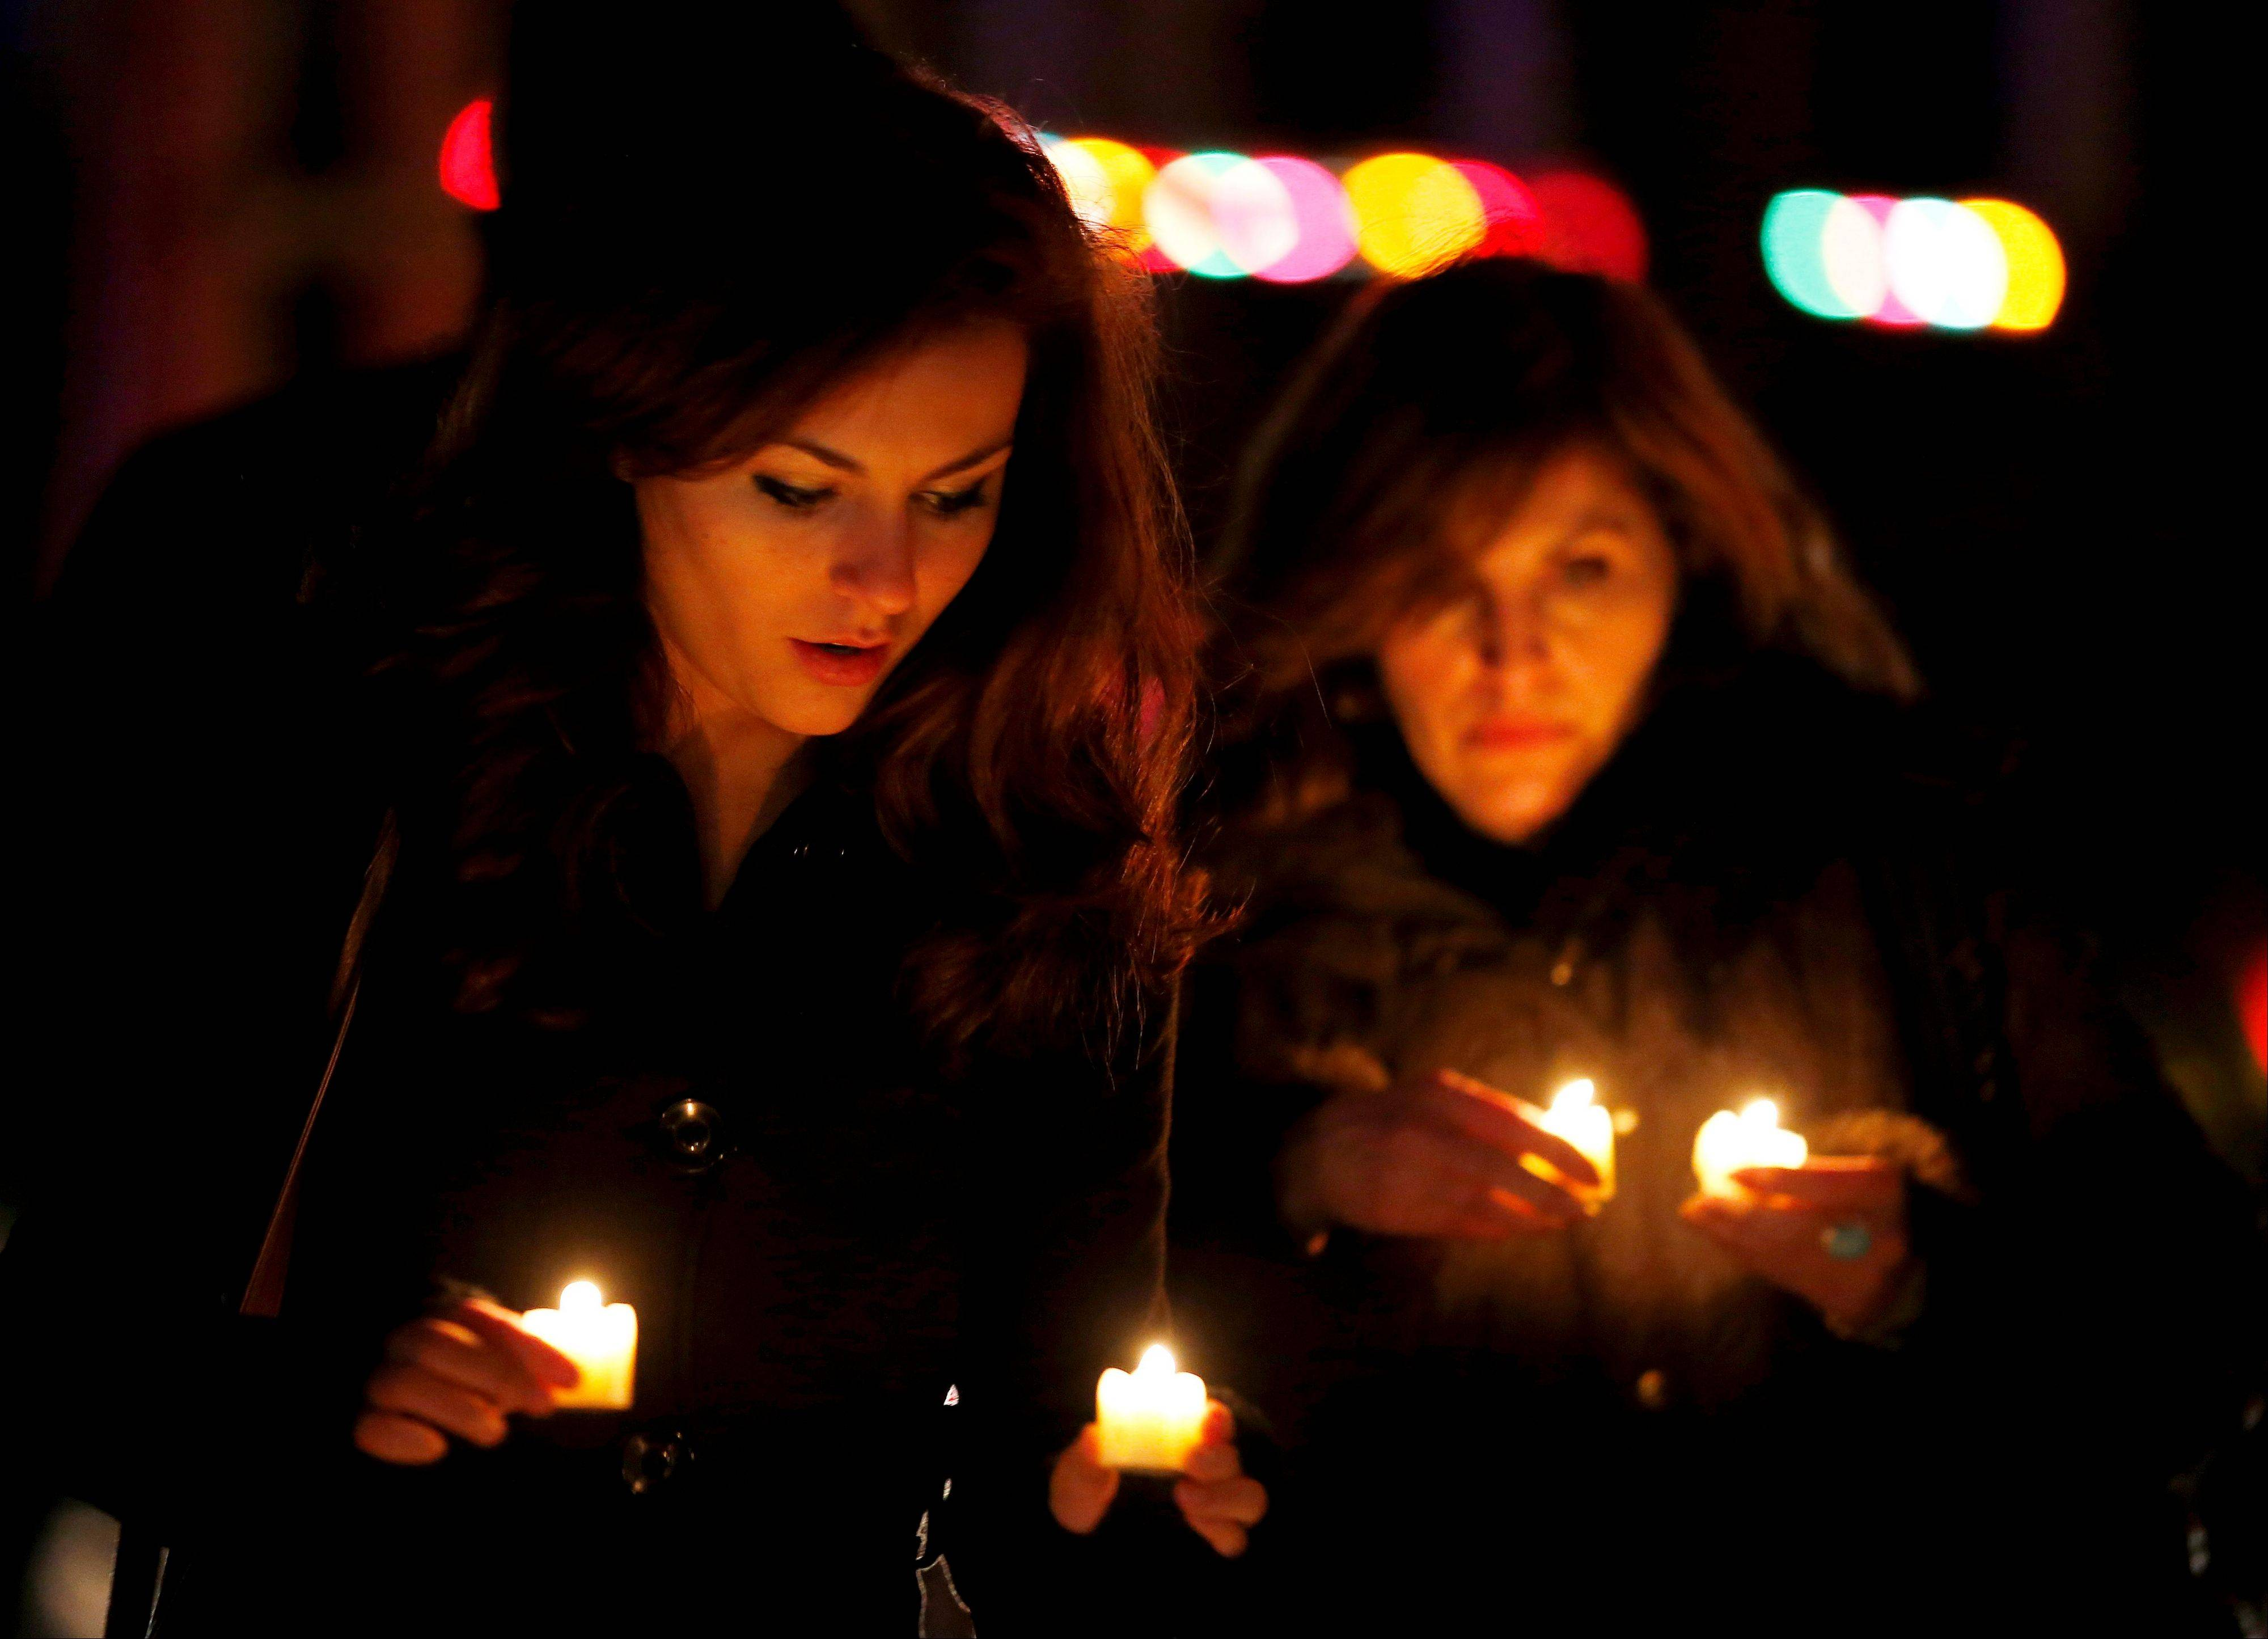 Katy Caulfield, left, and her mother, Irene Caufield, hold candles to place at a makeshift memorial near the elementary school where a day earlier a gunman opened fire, Saturday.